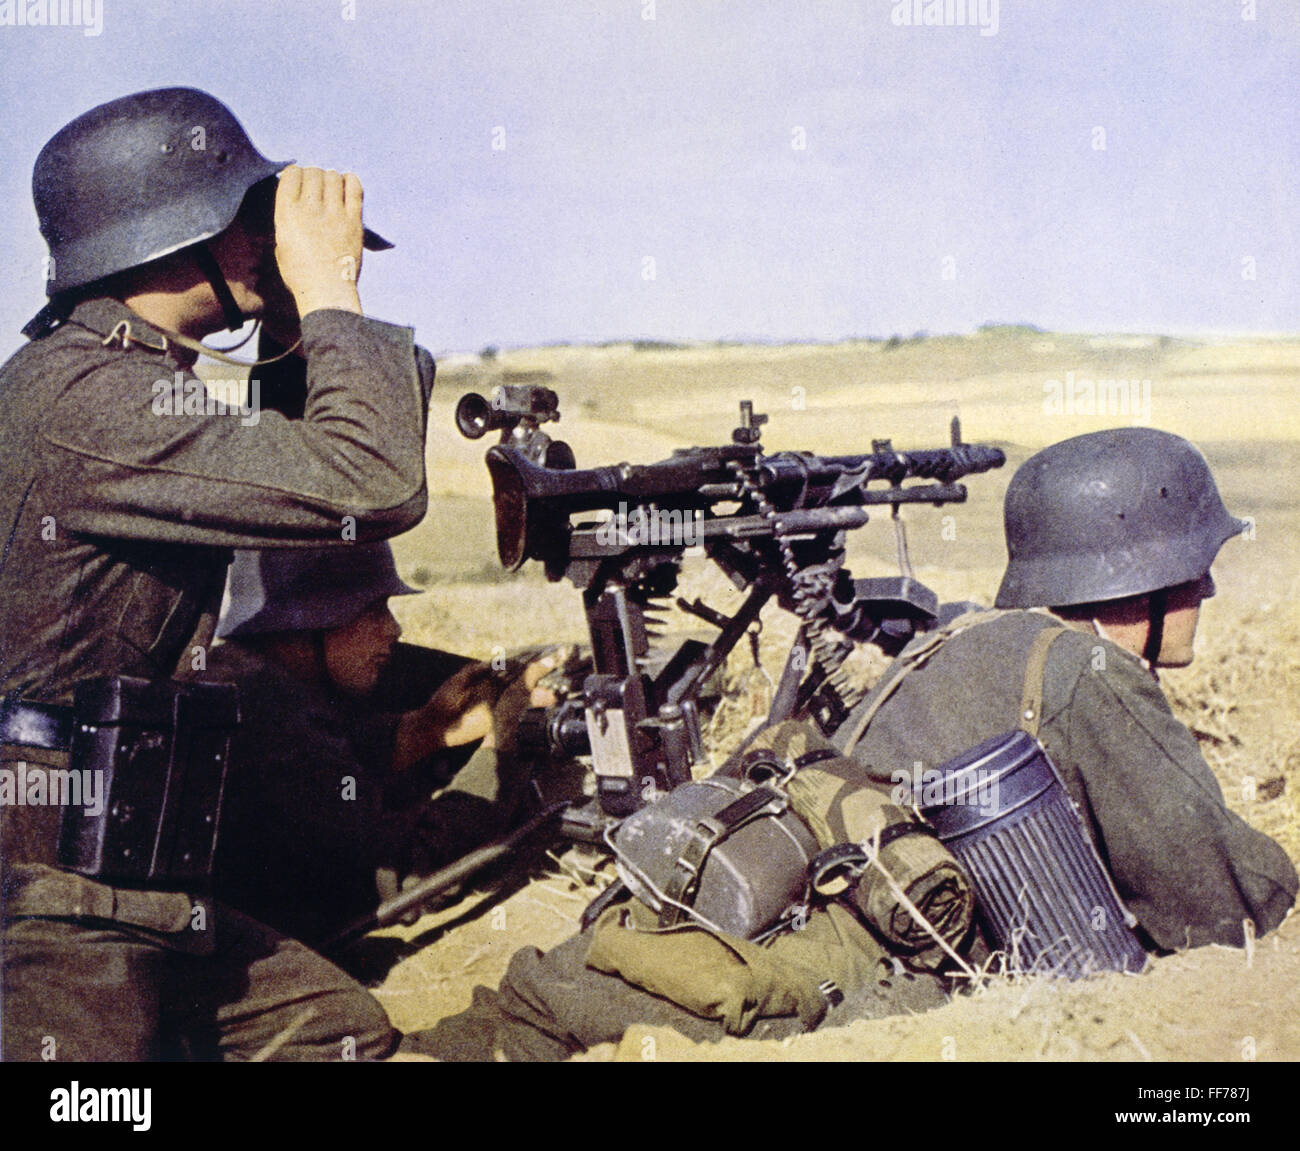 events, Second World War / WWII, German Wehrmacht, heavy machinegun MG 34 in firing position, circa 1940, Additional - Stock Image